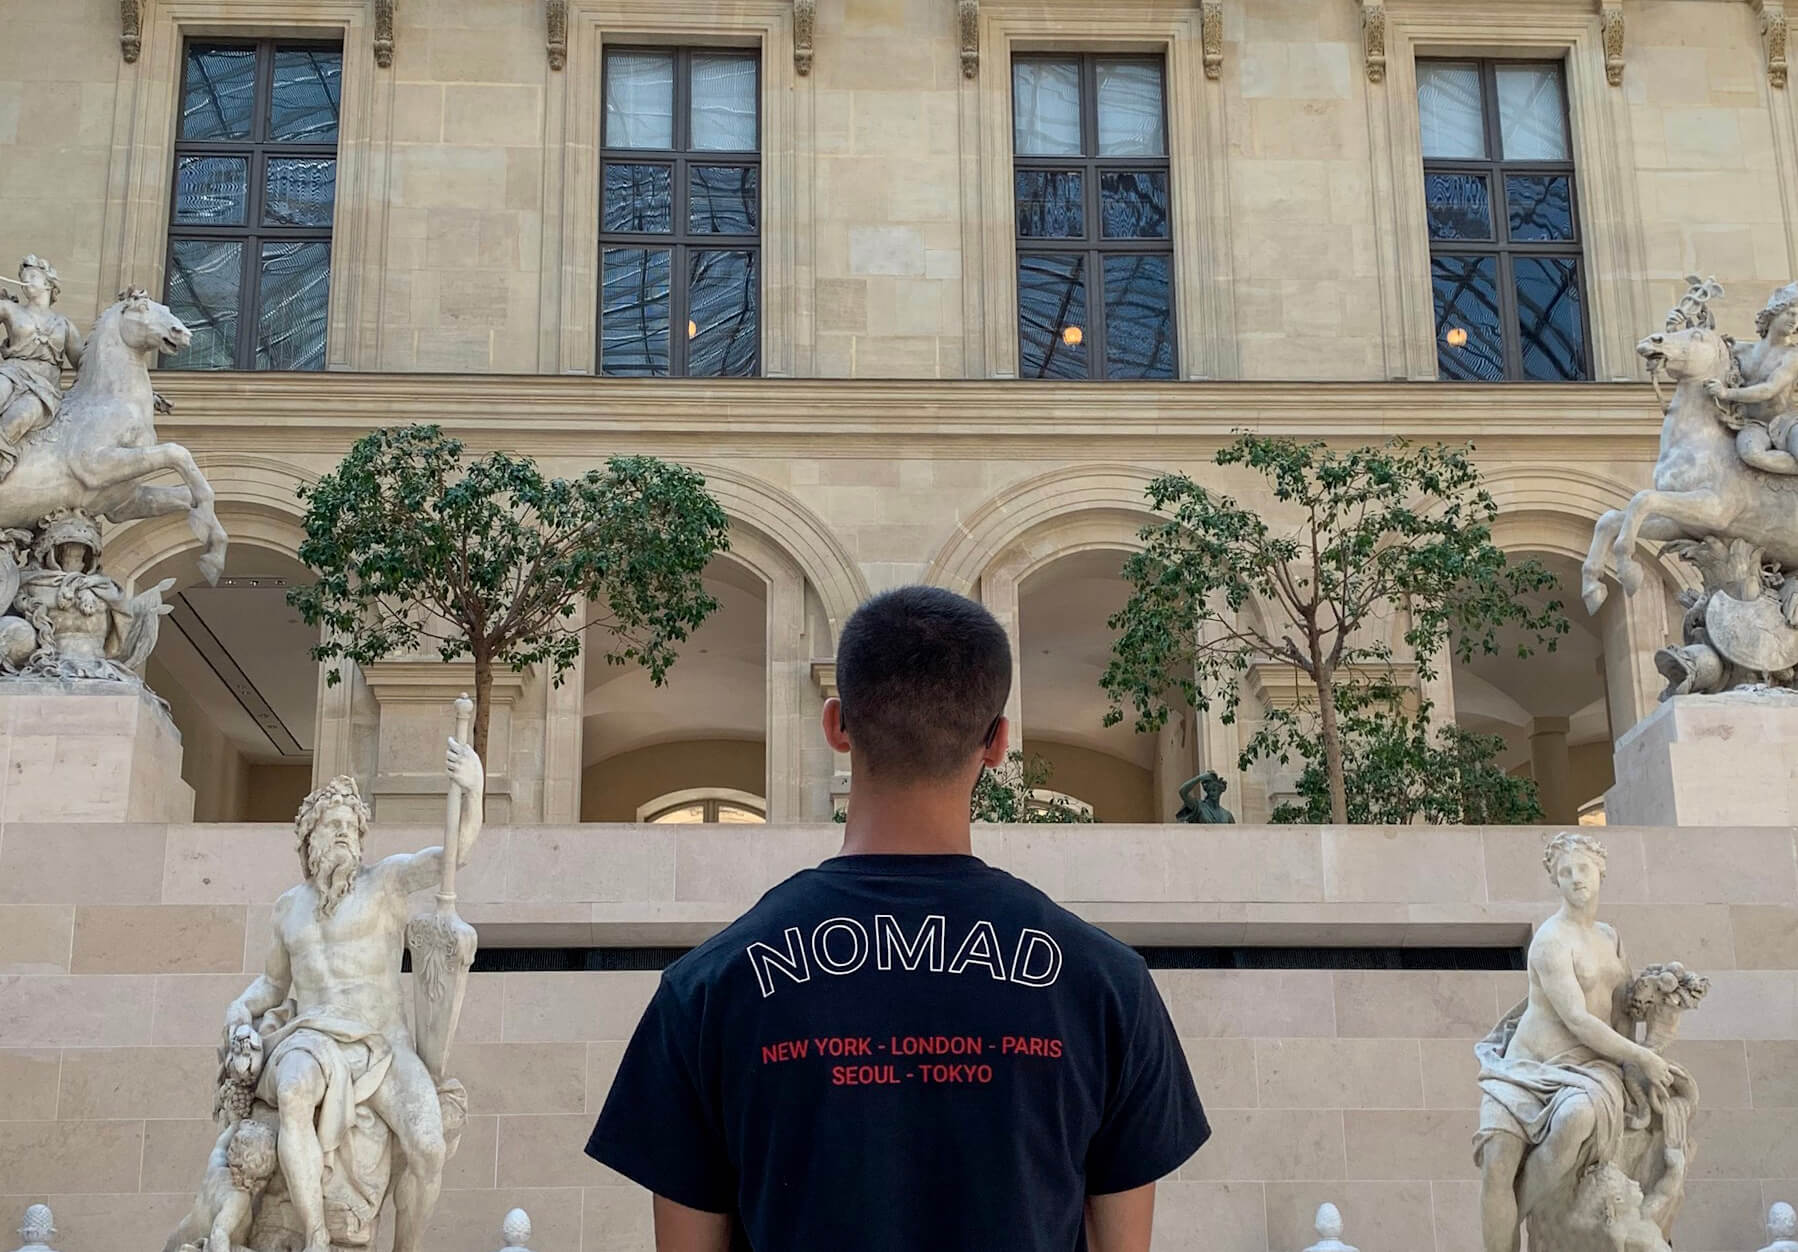 Nomad Creative Works at the Louvre